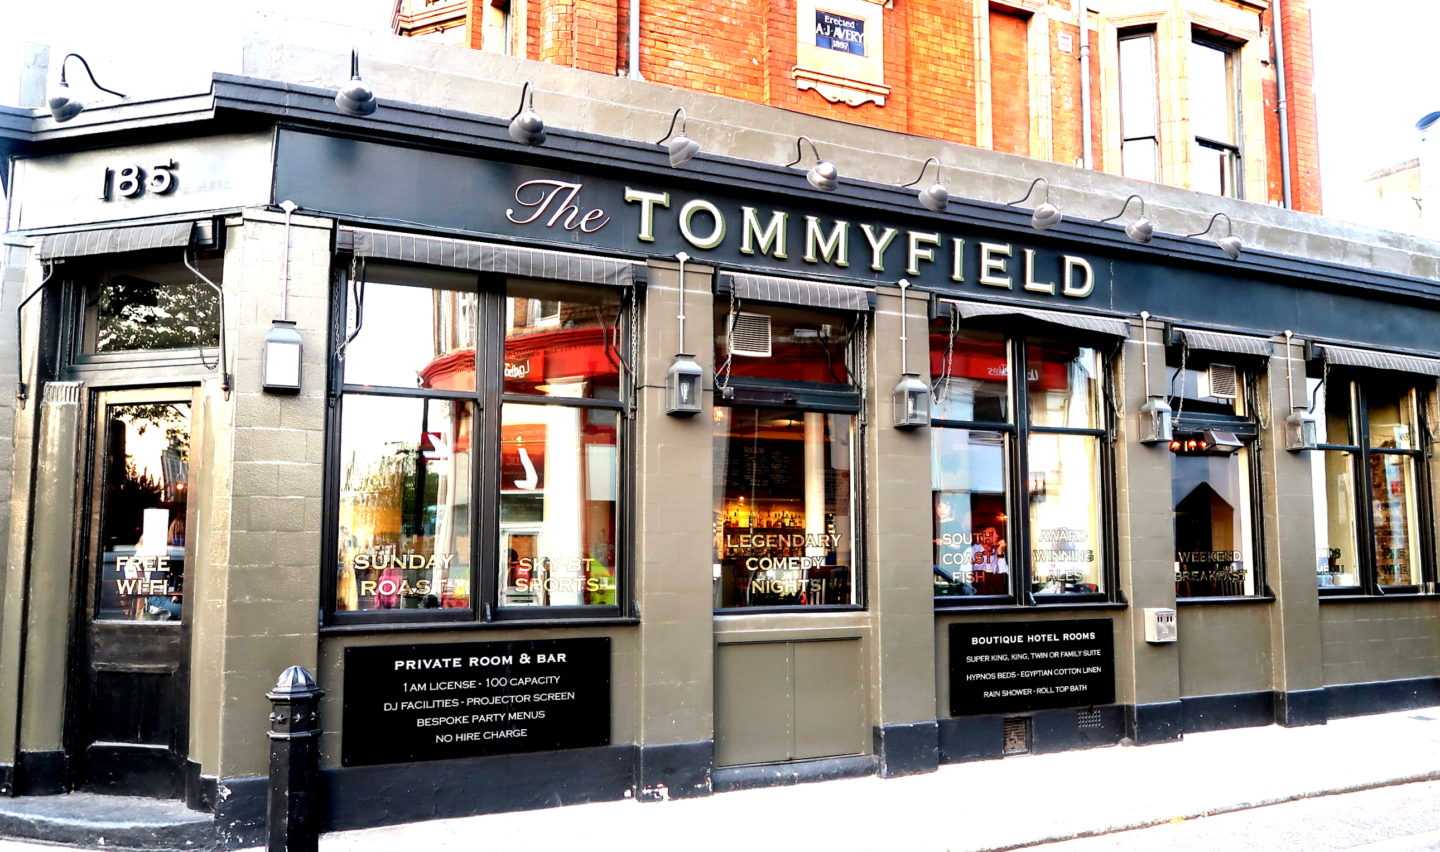 Review of The Tommyfield exterior